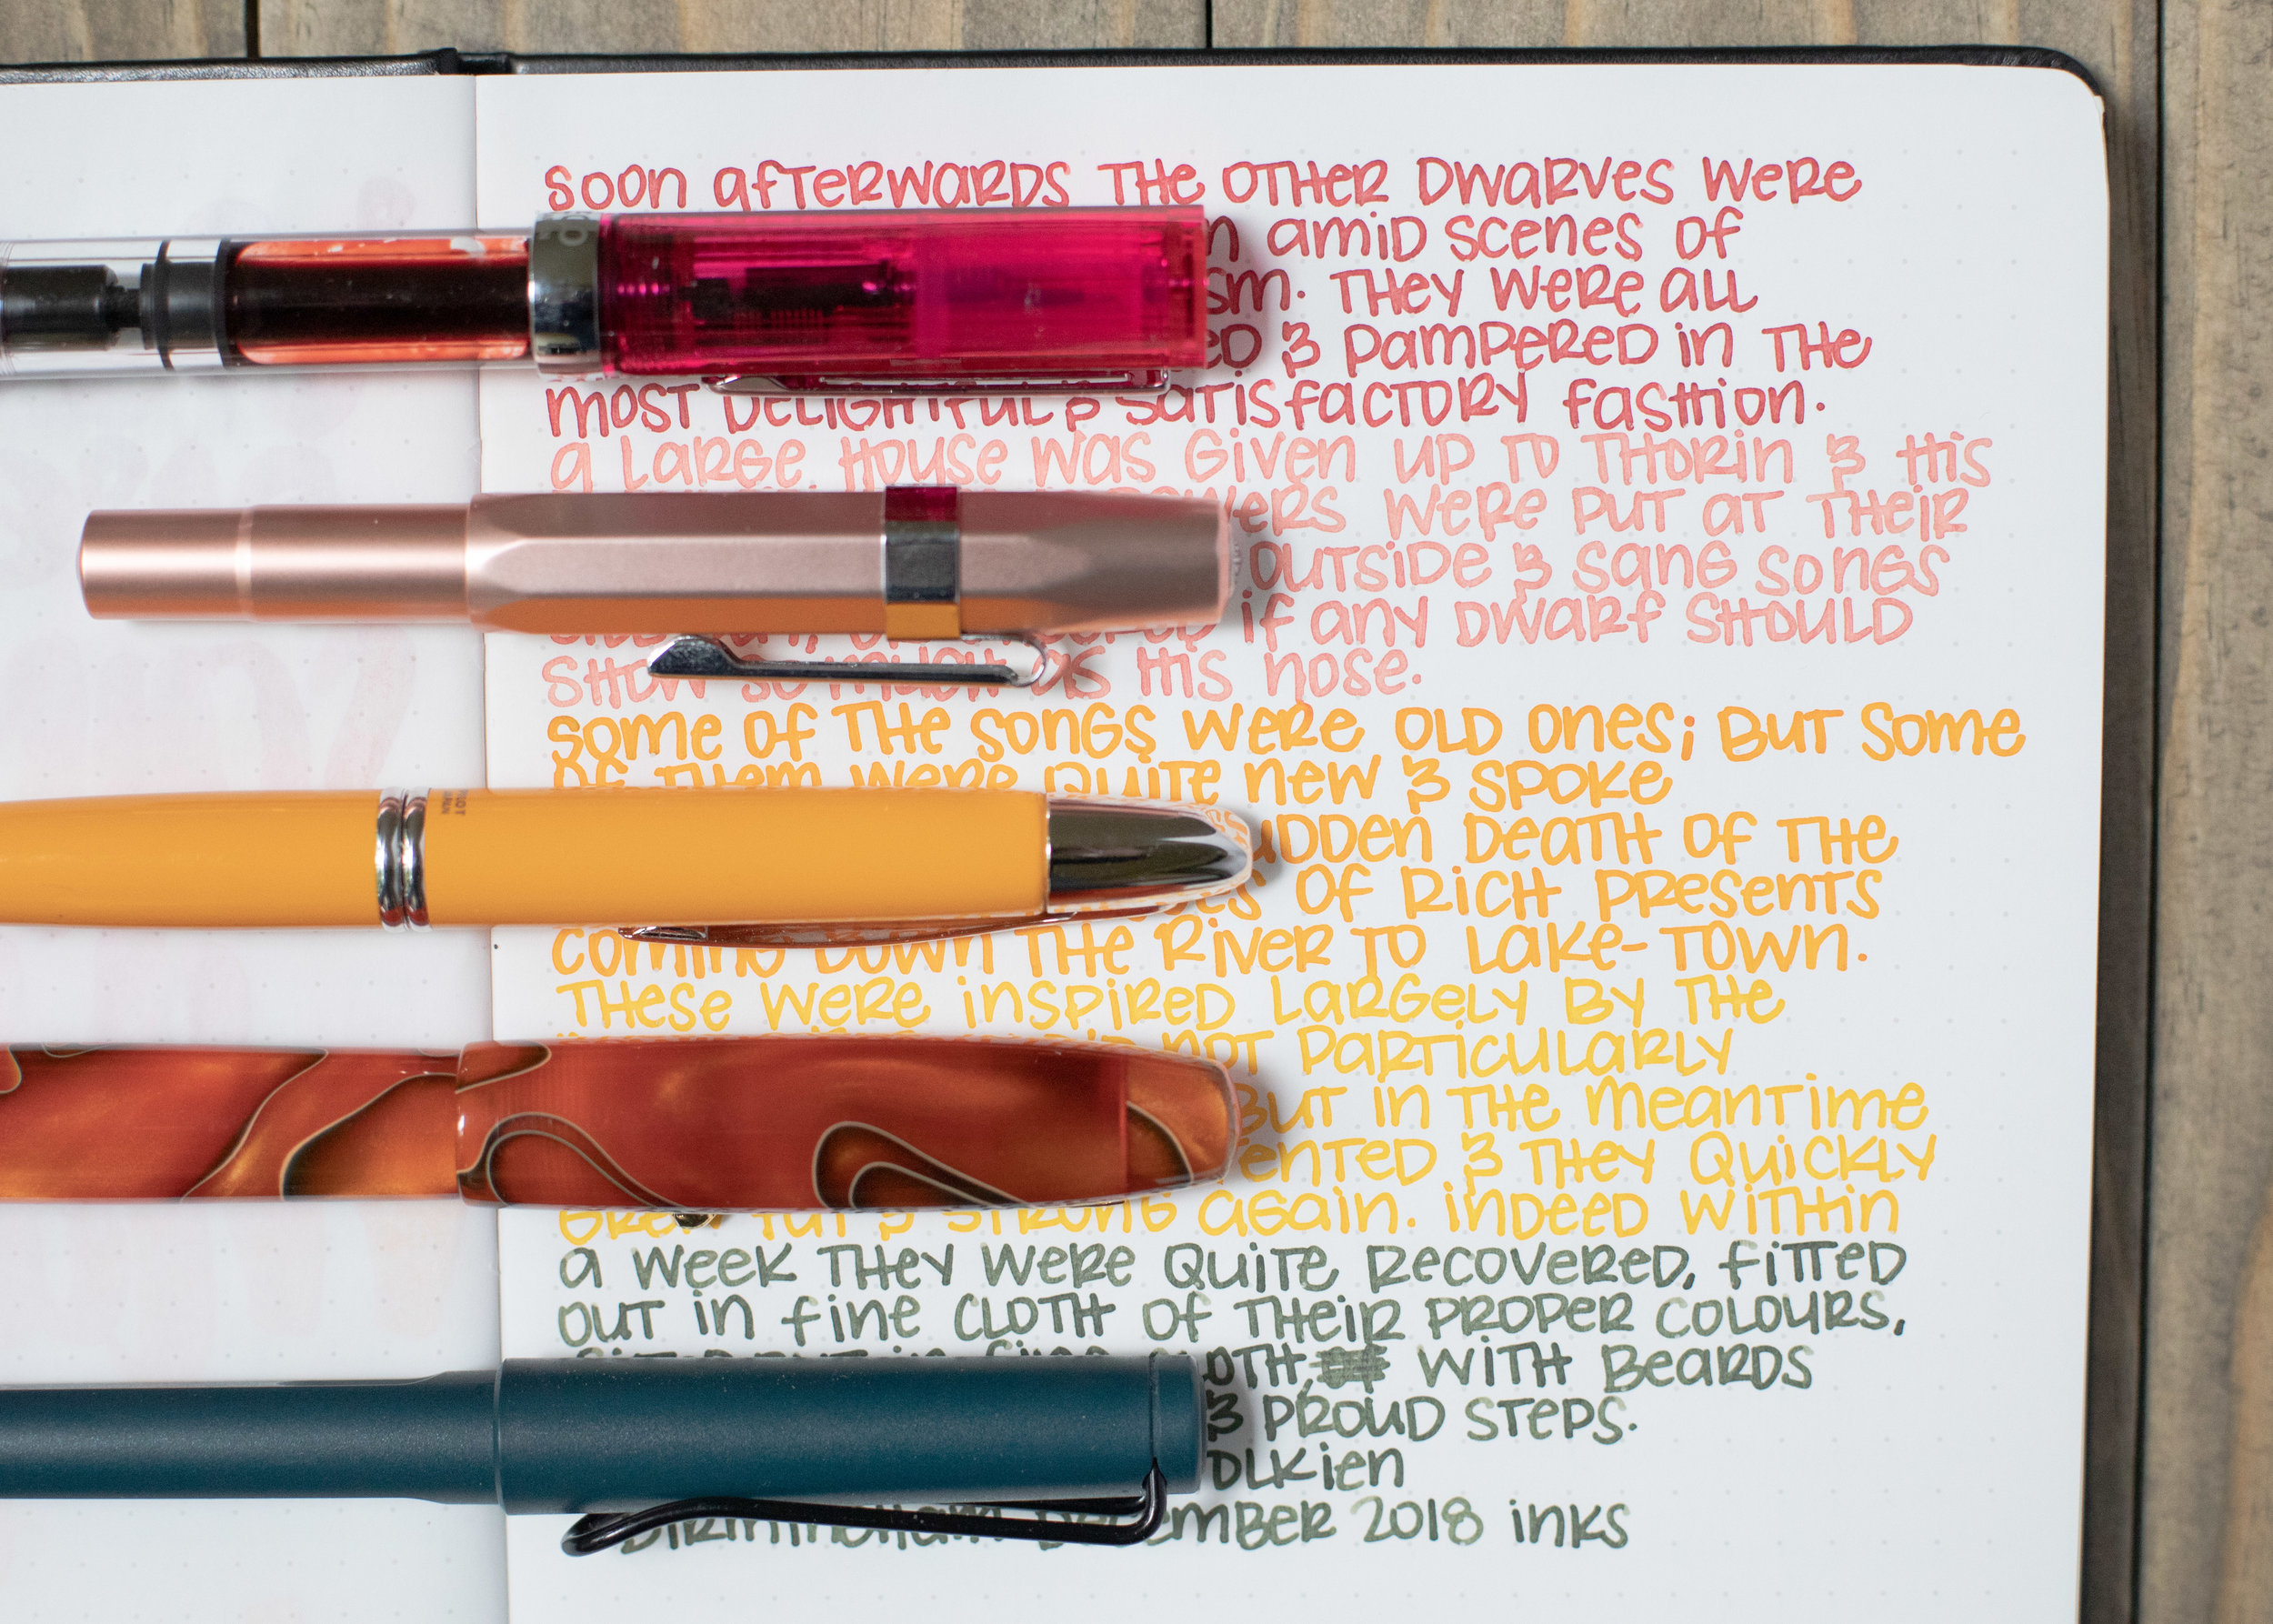 I used a Bond A5 (Tomoe River 68gsm). Top to bottom, I used: TWSBI Eco Blossom Red with a medium nib, Kaweco Al-sport Rose Gold with a broad nib, Pilot Vanishing Point Yellow with a medium nib, Edison Collier Persimmon Swirl with a medium nib, and Lamy Safari with a medium nib. All of the inks had an average flow.